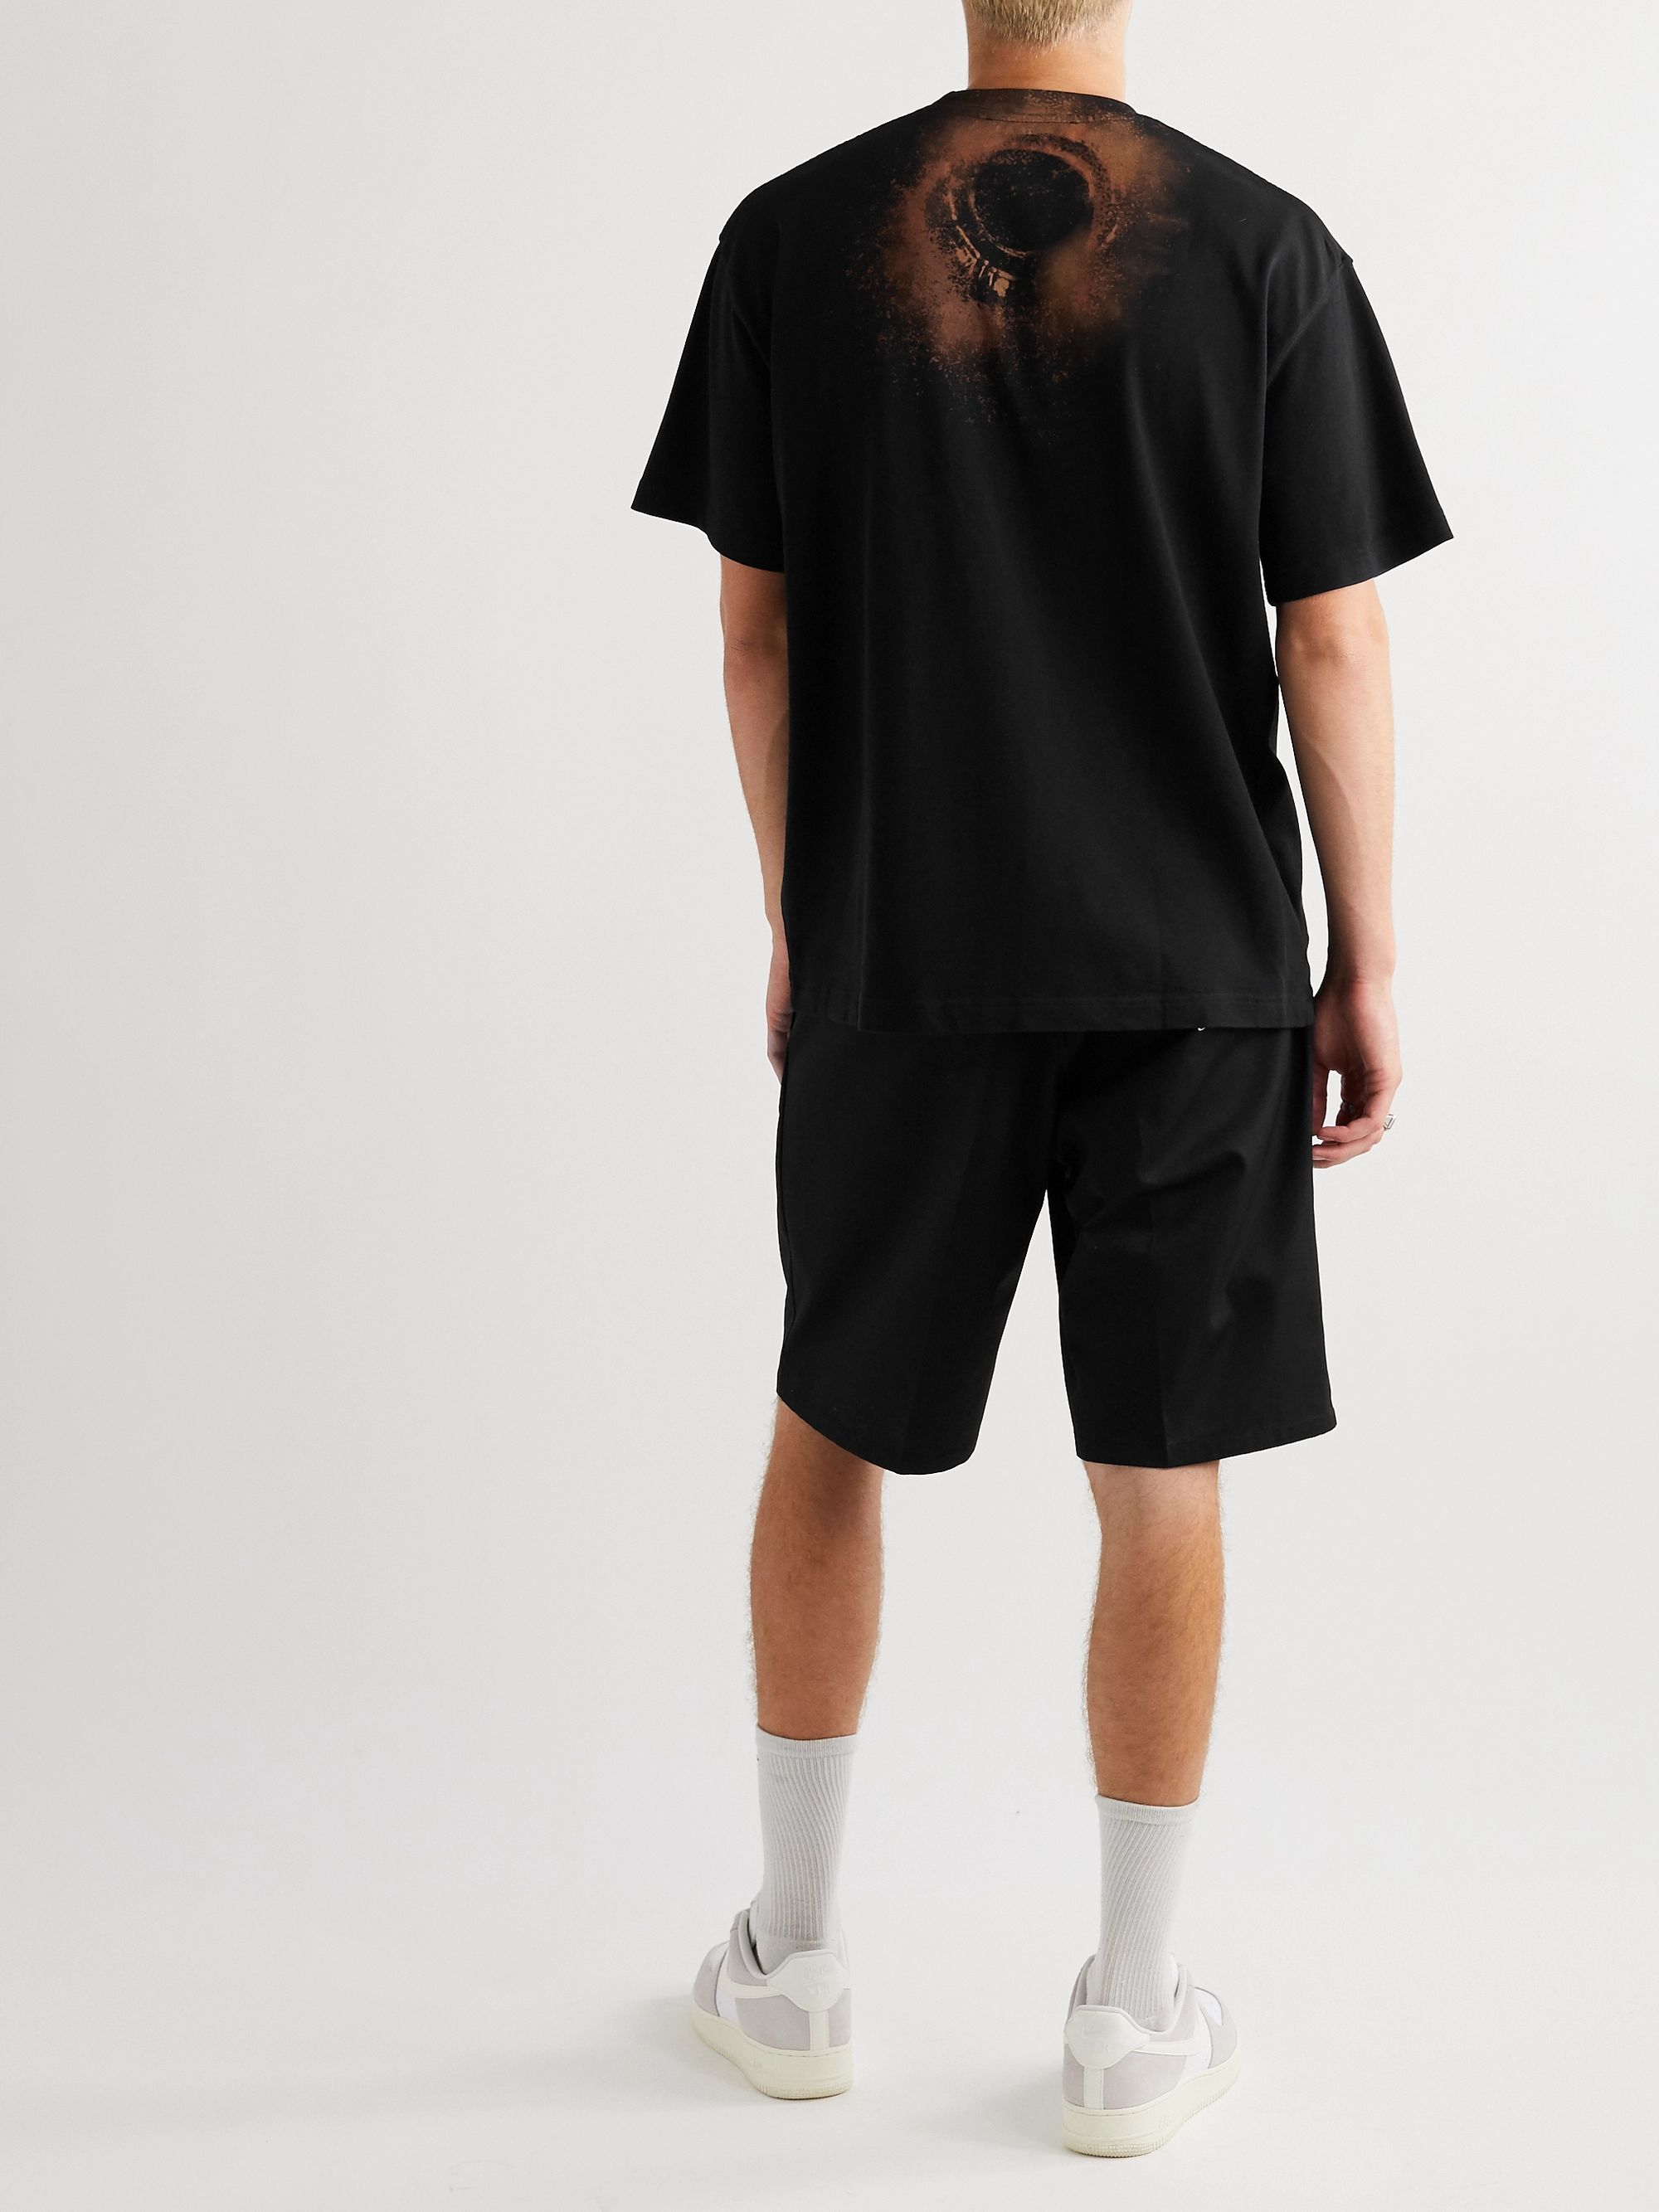 A-COLD-WALL* Printed Cotton-Jersey T-Shirt